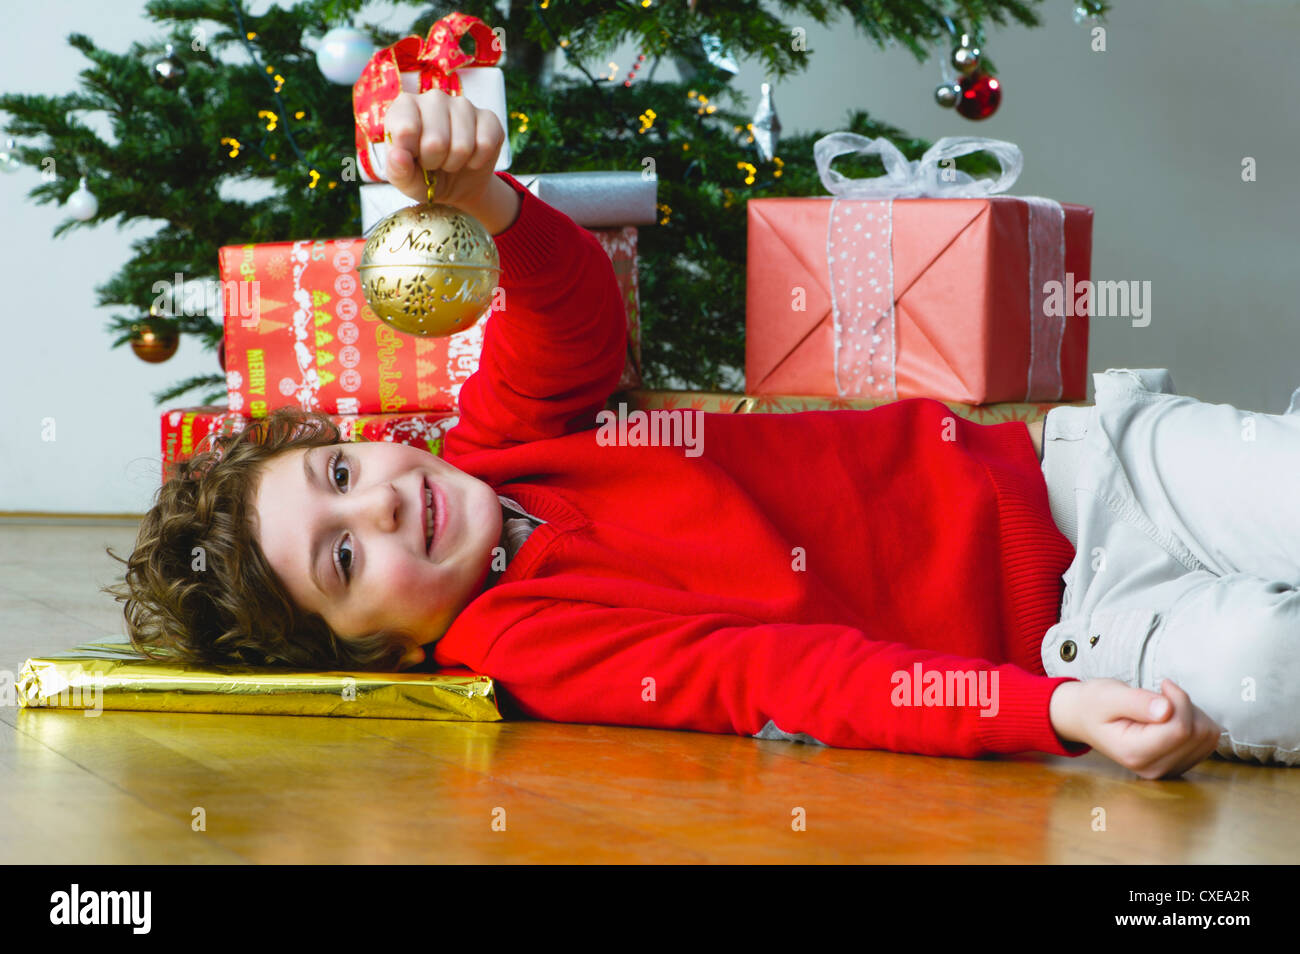 Boy lying on floor by Christmas tree, holding up ornament - Stock Image